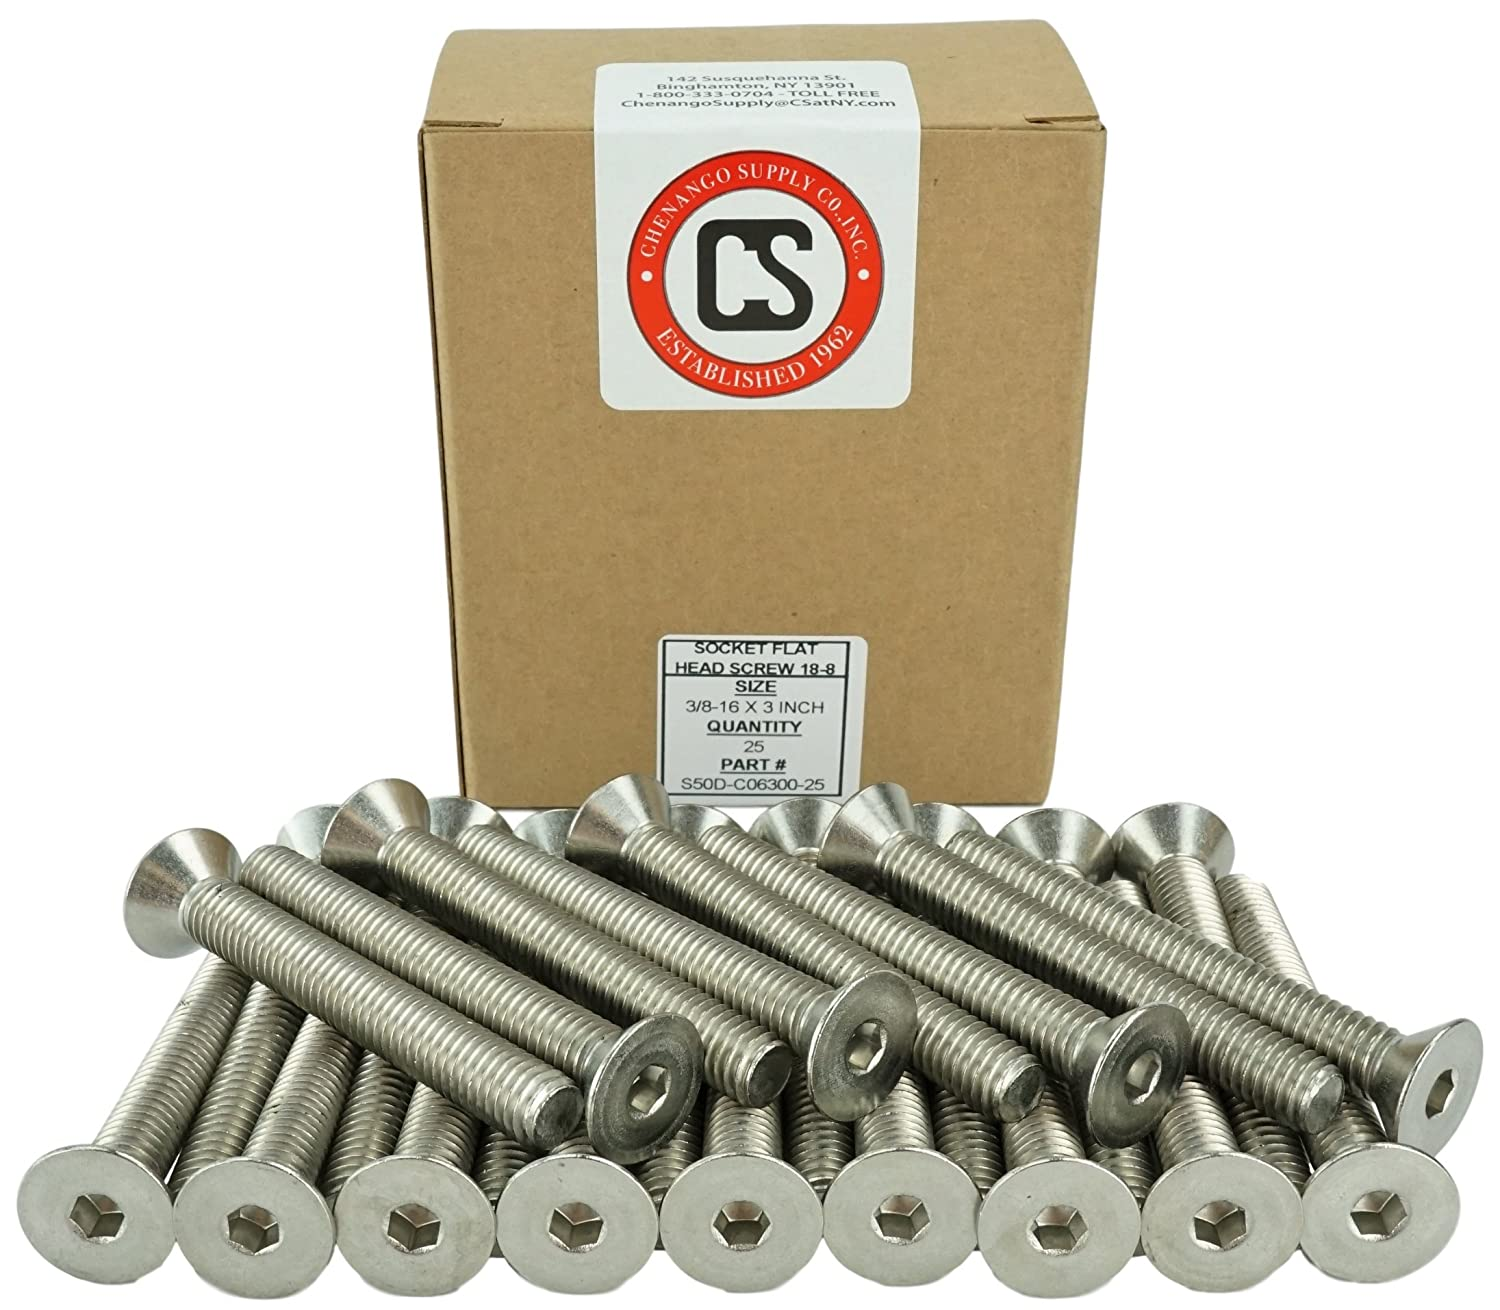 Socket Flat Head Screws 3//4 to 3 Available Hex Drive Stainless Steel 18-8 Full Thread Stainless 3//8-16 x 3 Coarse Thread 3//8-16 x 3